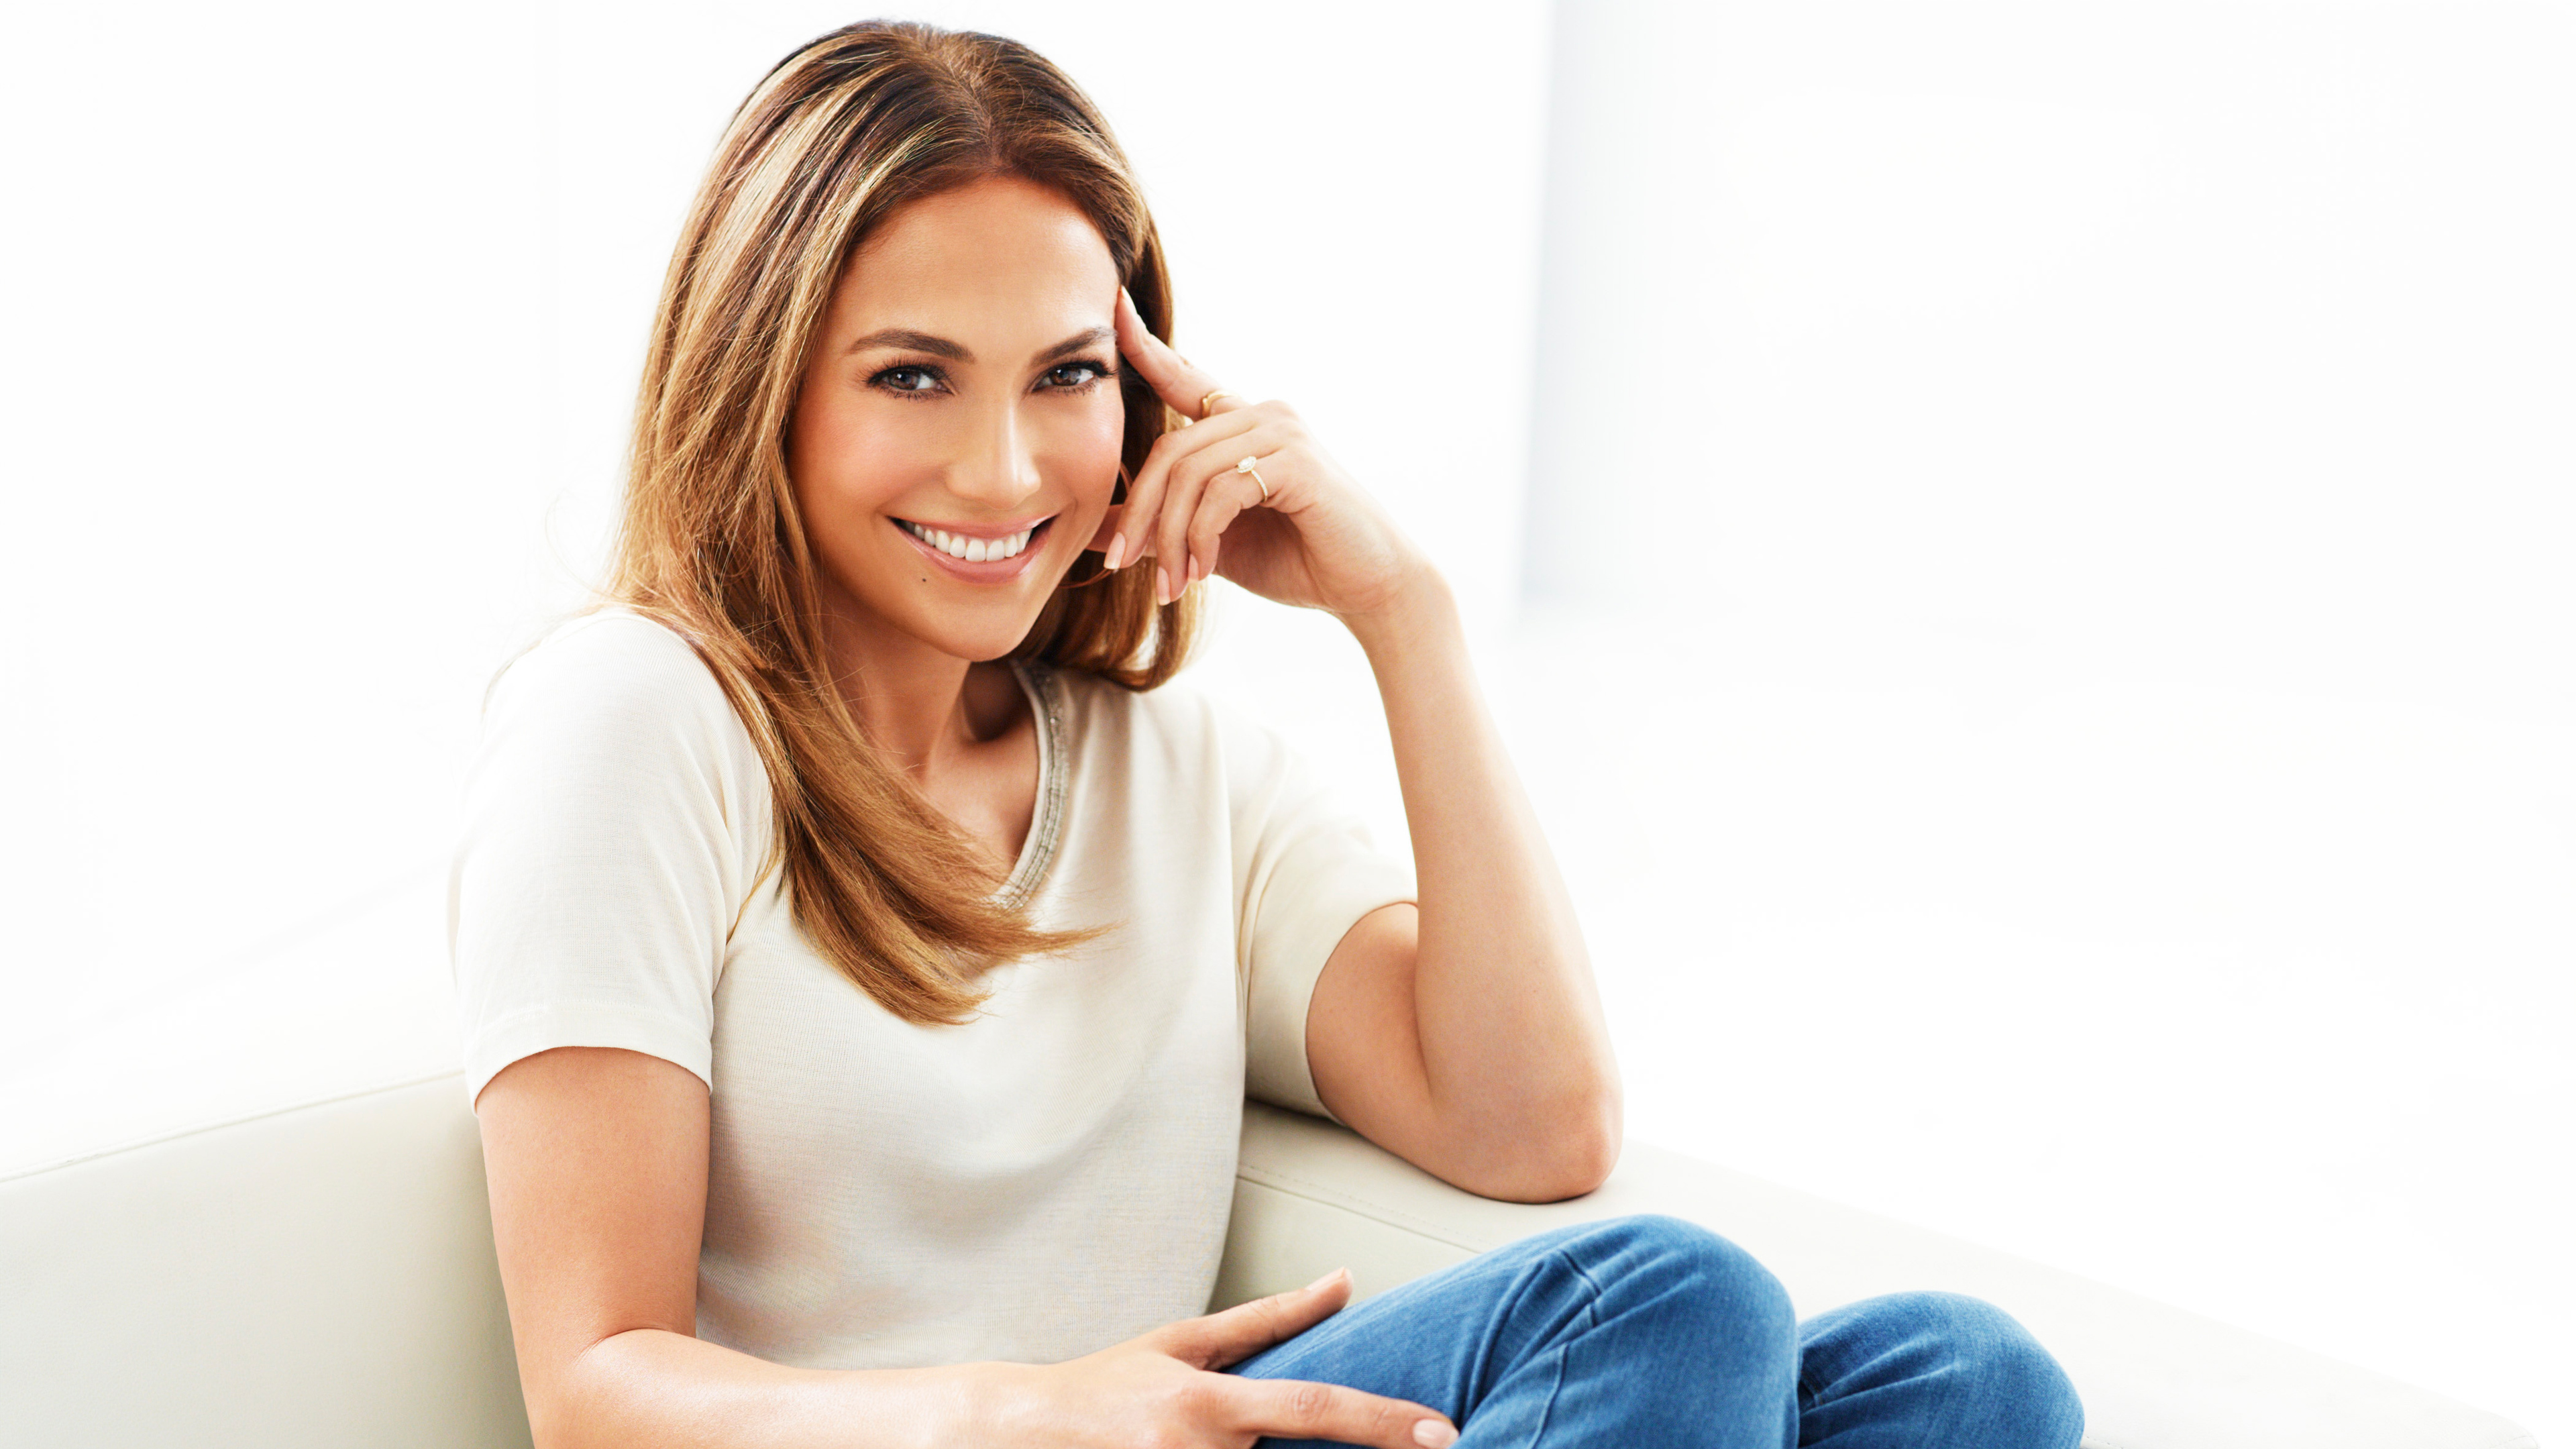 jennifer lopez smiling 2018 1542824644 - Jennifer Lopez Smiling 2019 - smile wallpapers, singer wallpapers, music wallpapers, jennifer lopez wallpapers, hd-wallpapers, girls wallpapers, celebrities wallpapers, 4k-wallpapers